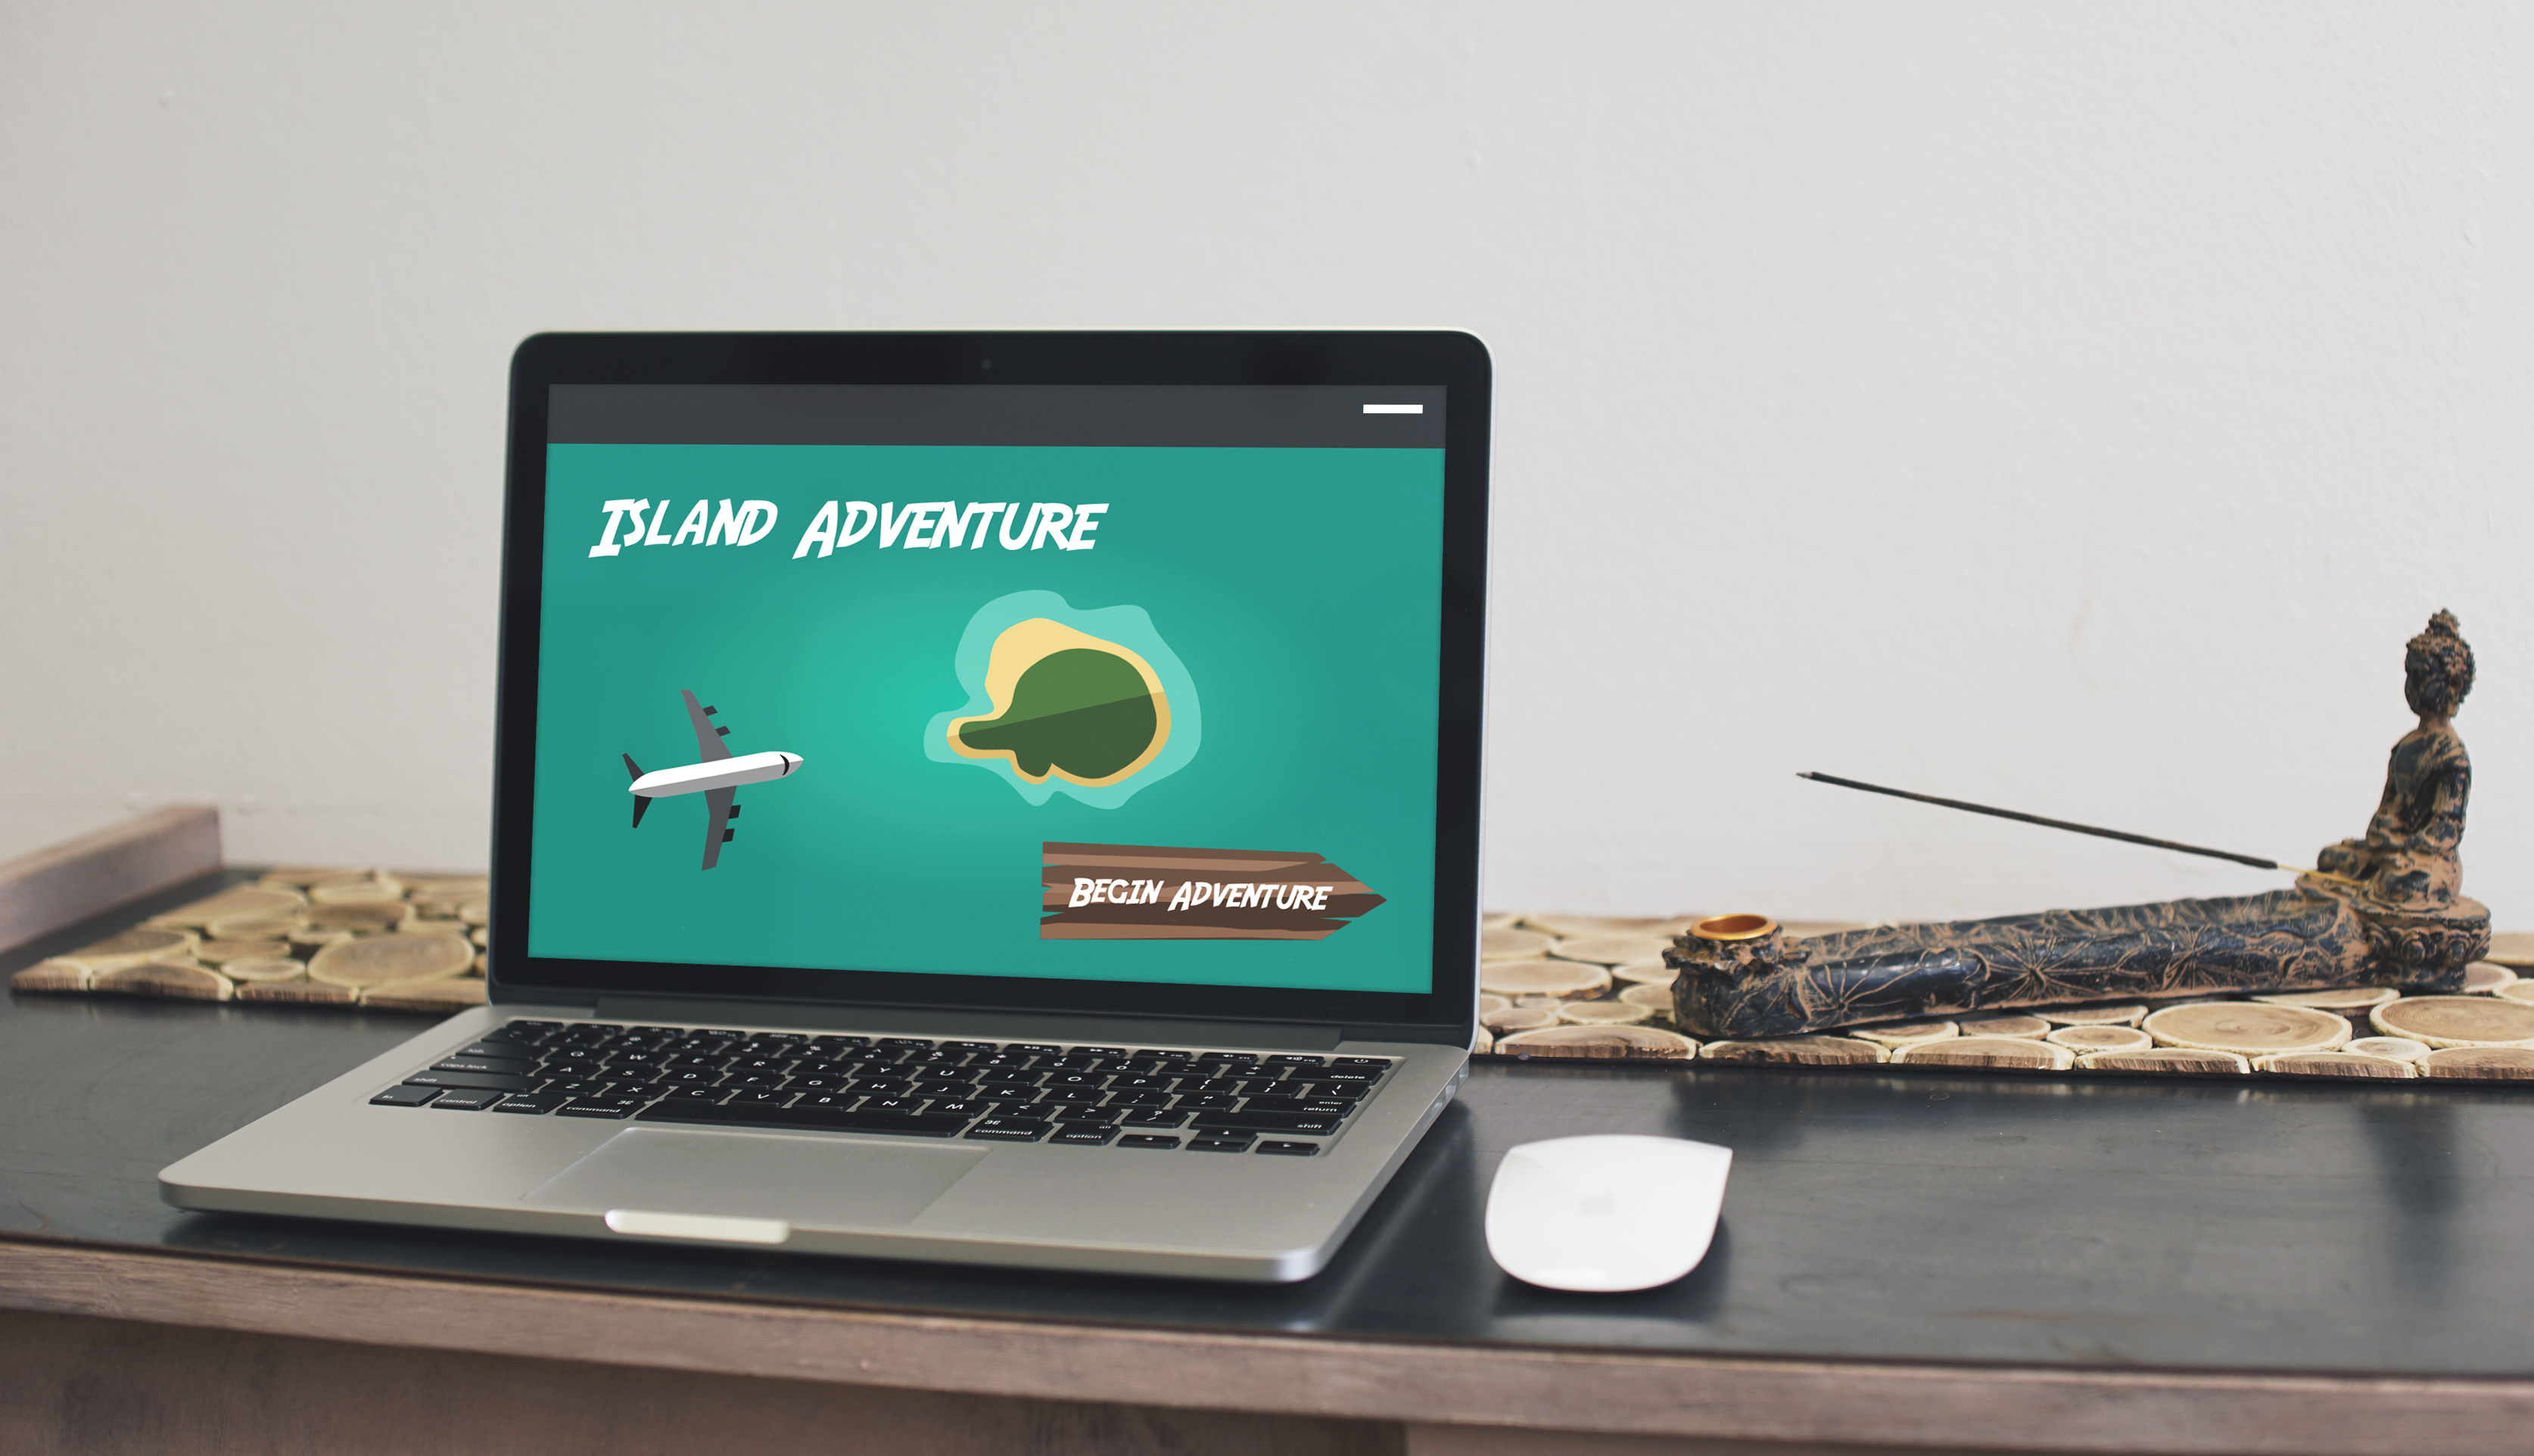 Island Adventure Website